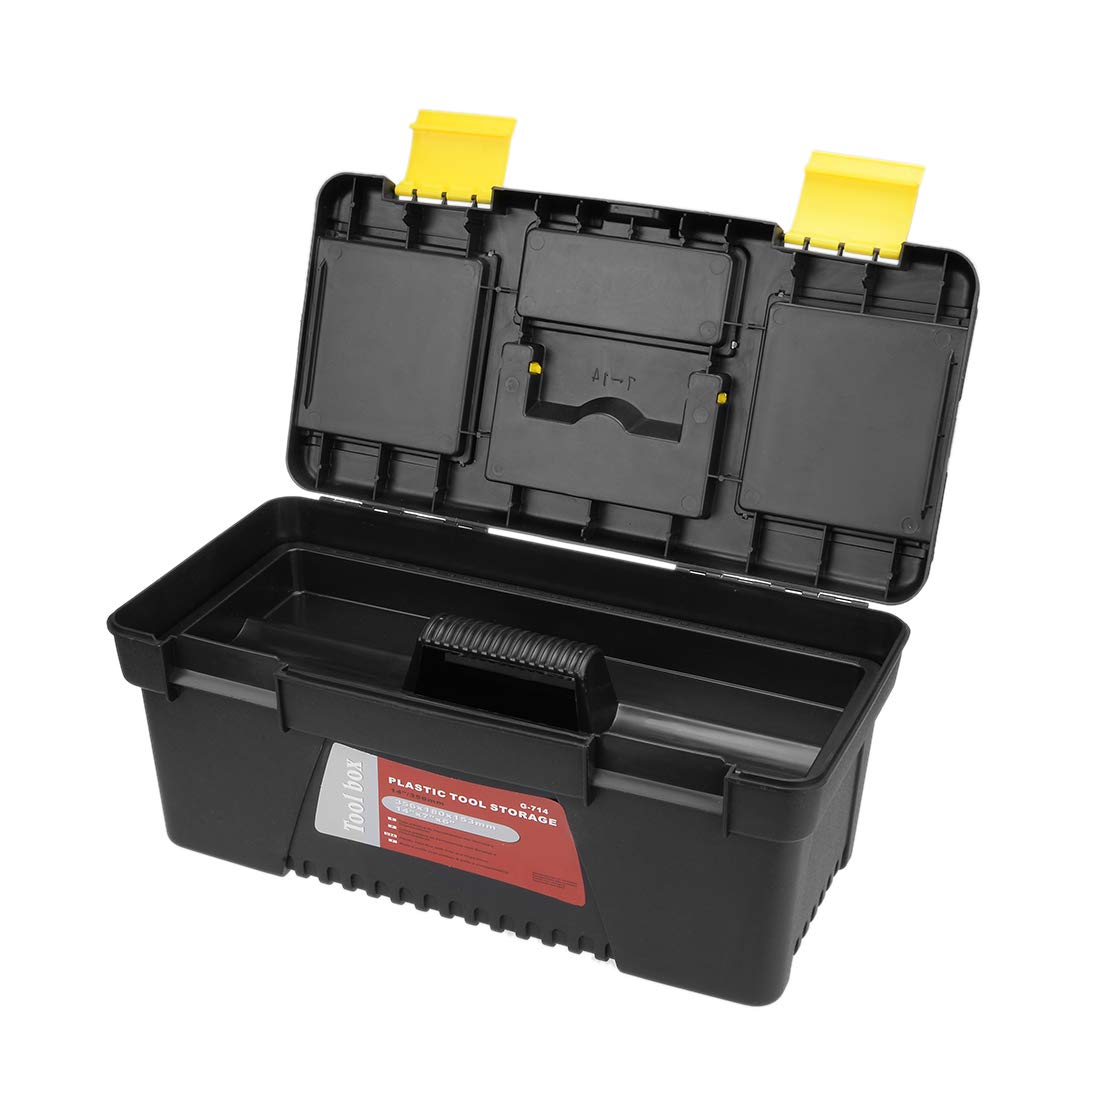 Plastic Tool Box with Tray and Organizers Includes Removable Three Small Parts Boxes uxcell 14-inch Tool Box